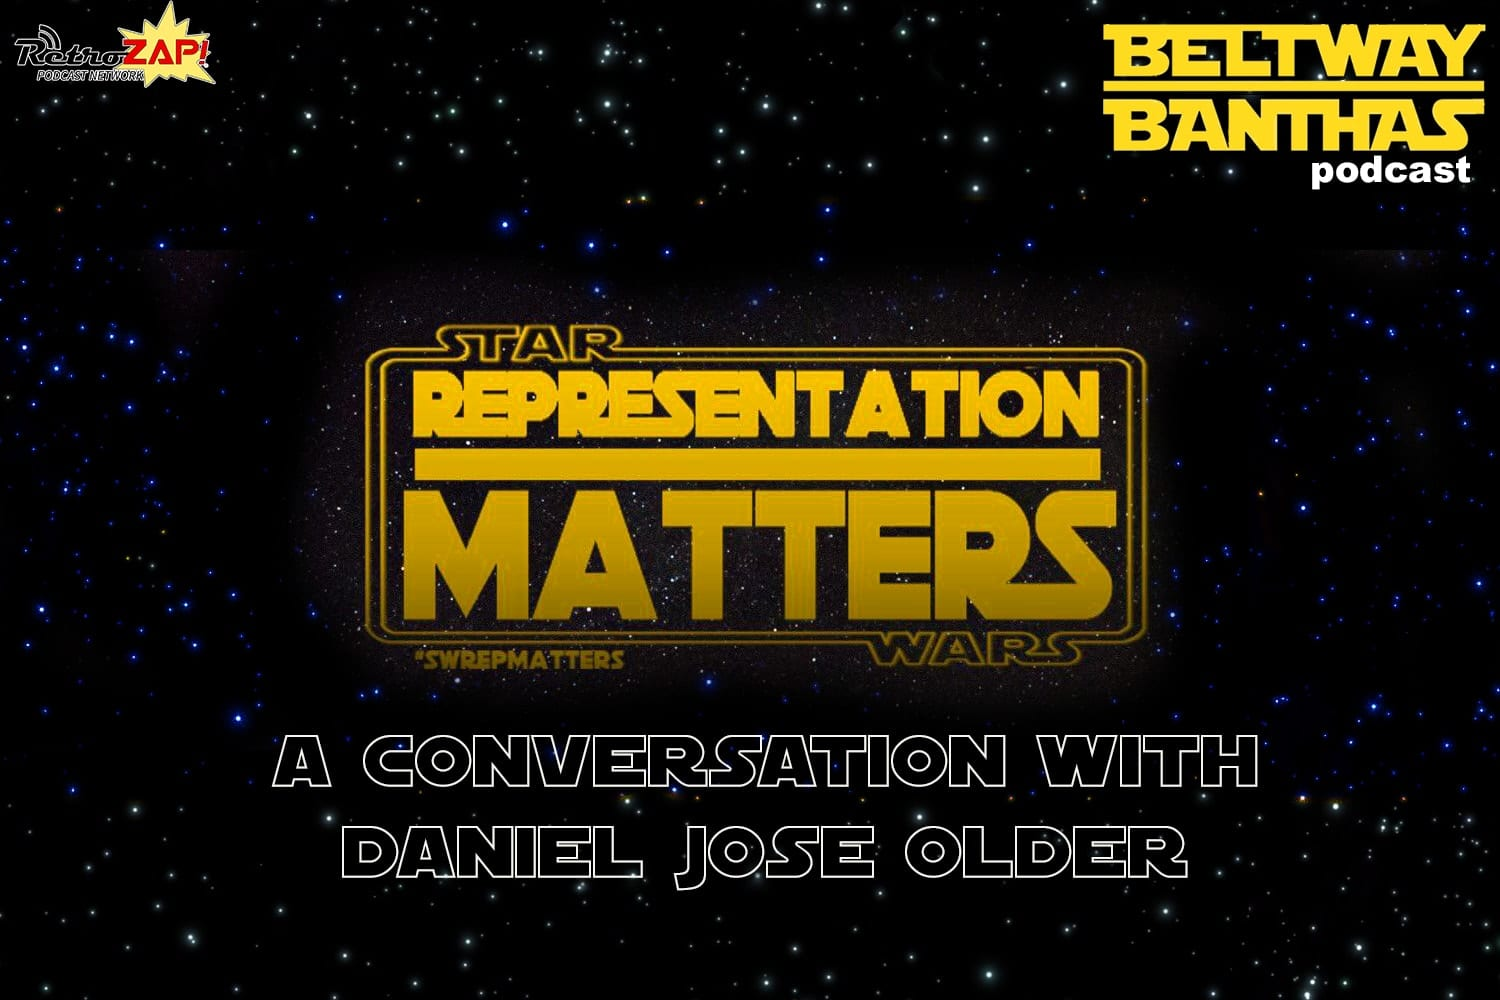 Beltway Banthas: Star Wars Representation Matters ft. Daniel Jose Older